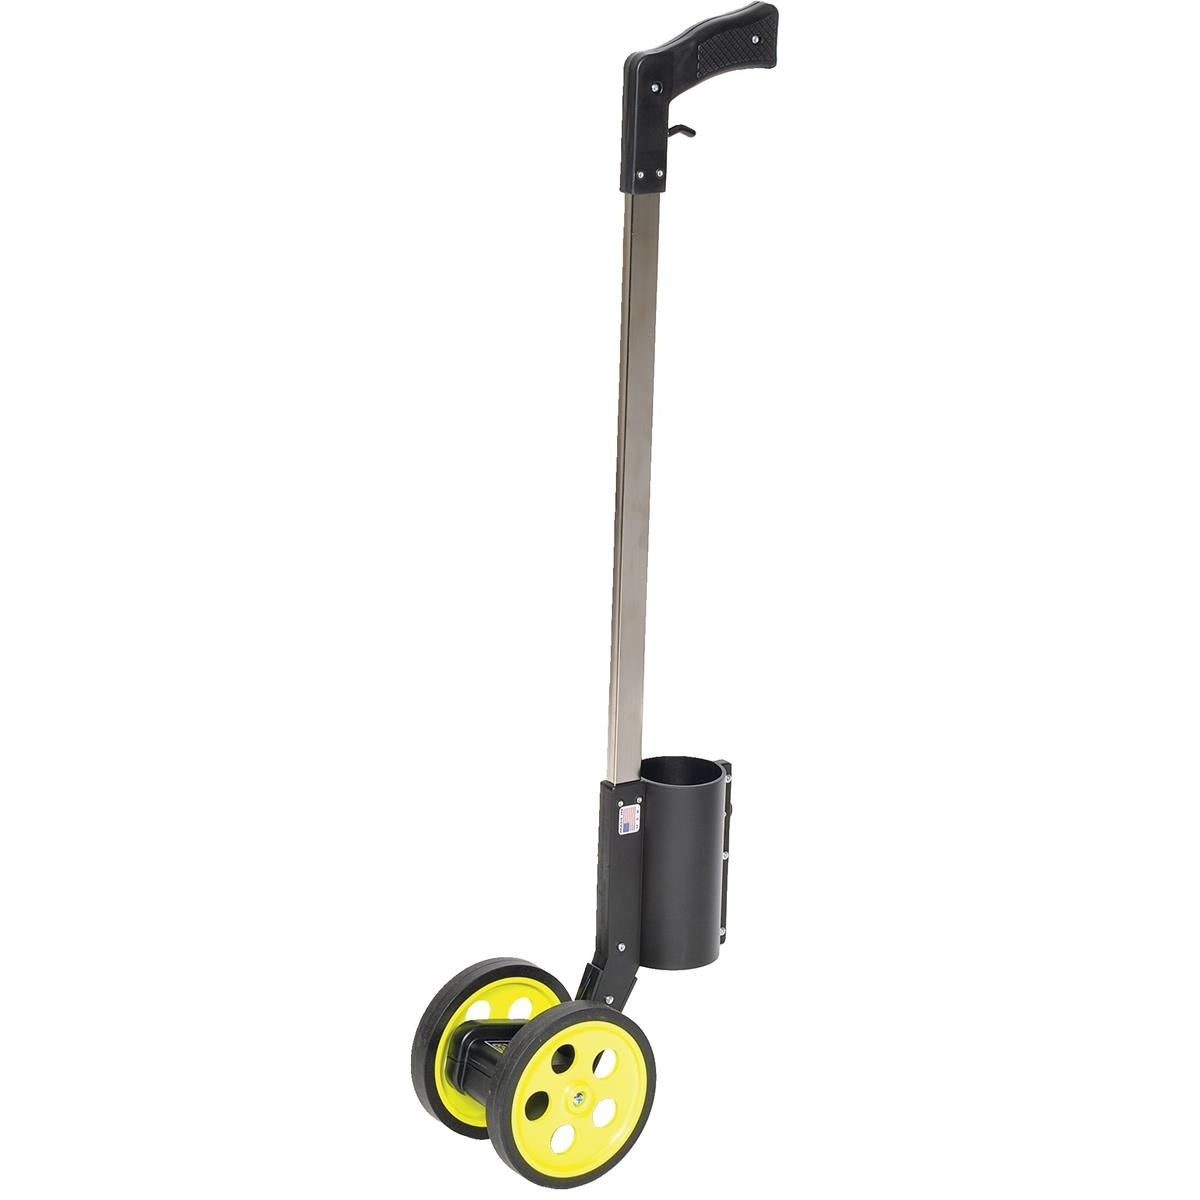 Meter-Man Measuring Wheel with Paint Applicator